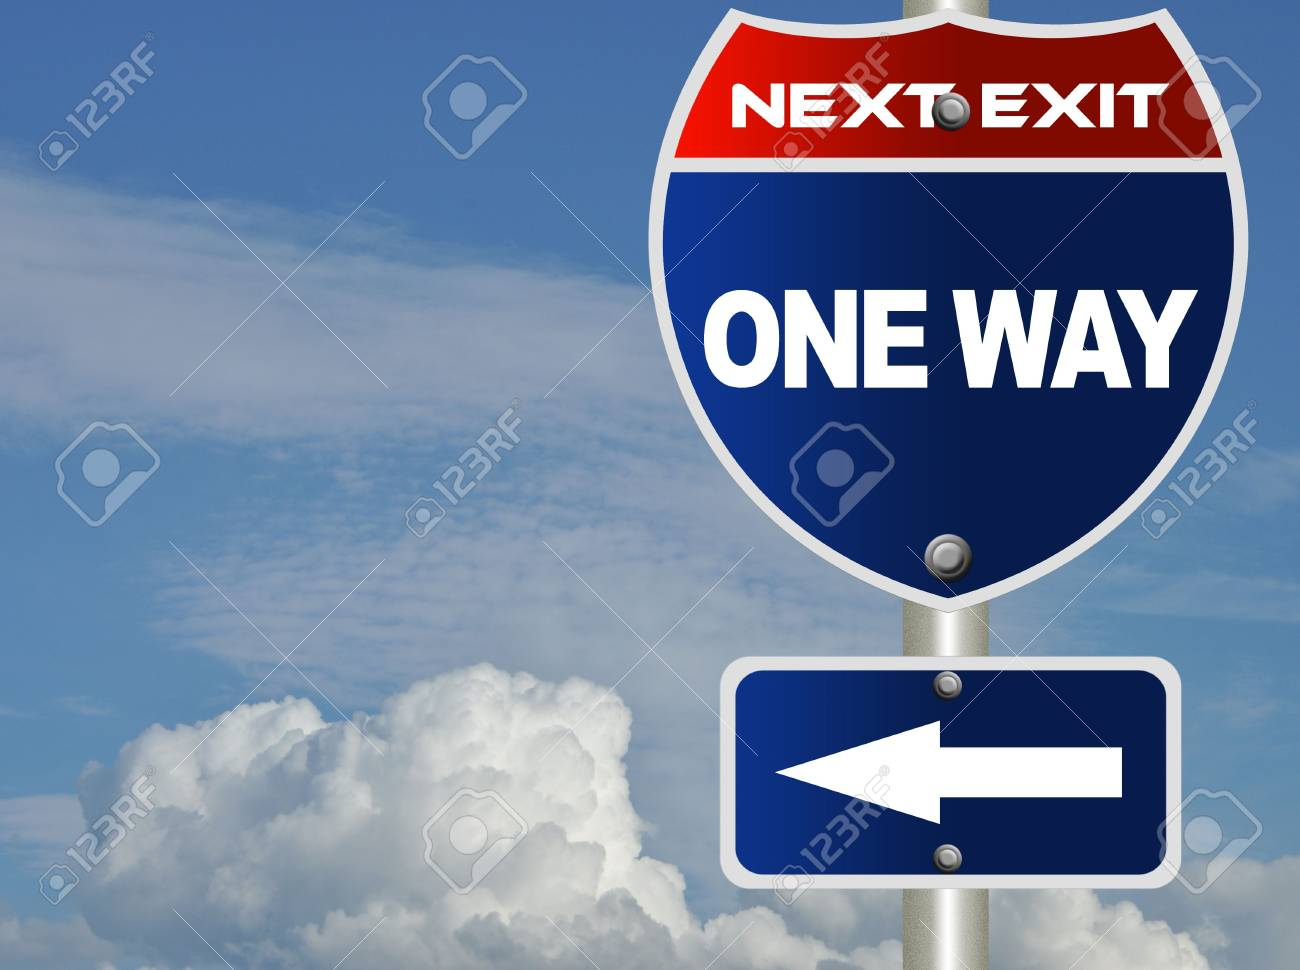 One way road sign Stock Photo - 8184768